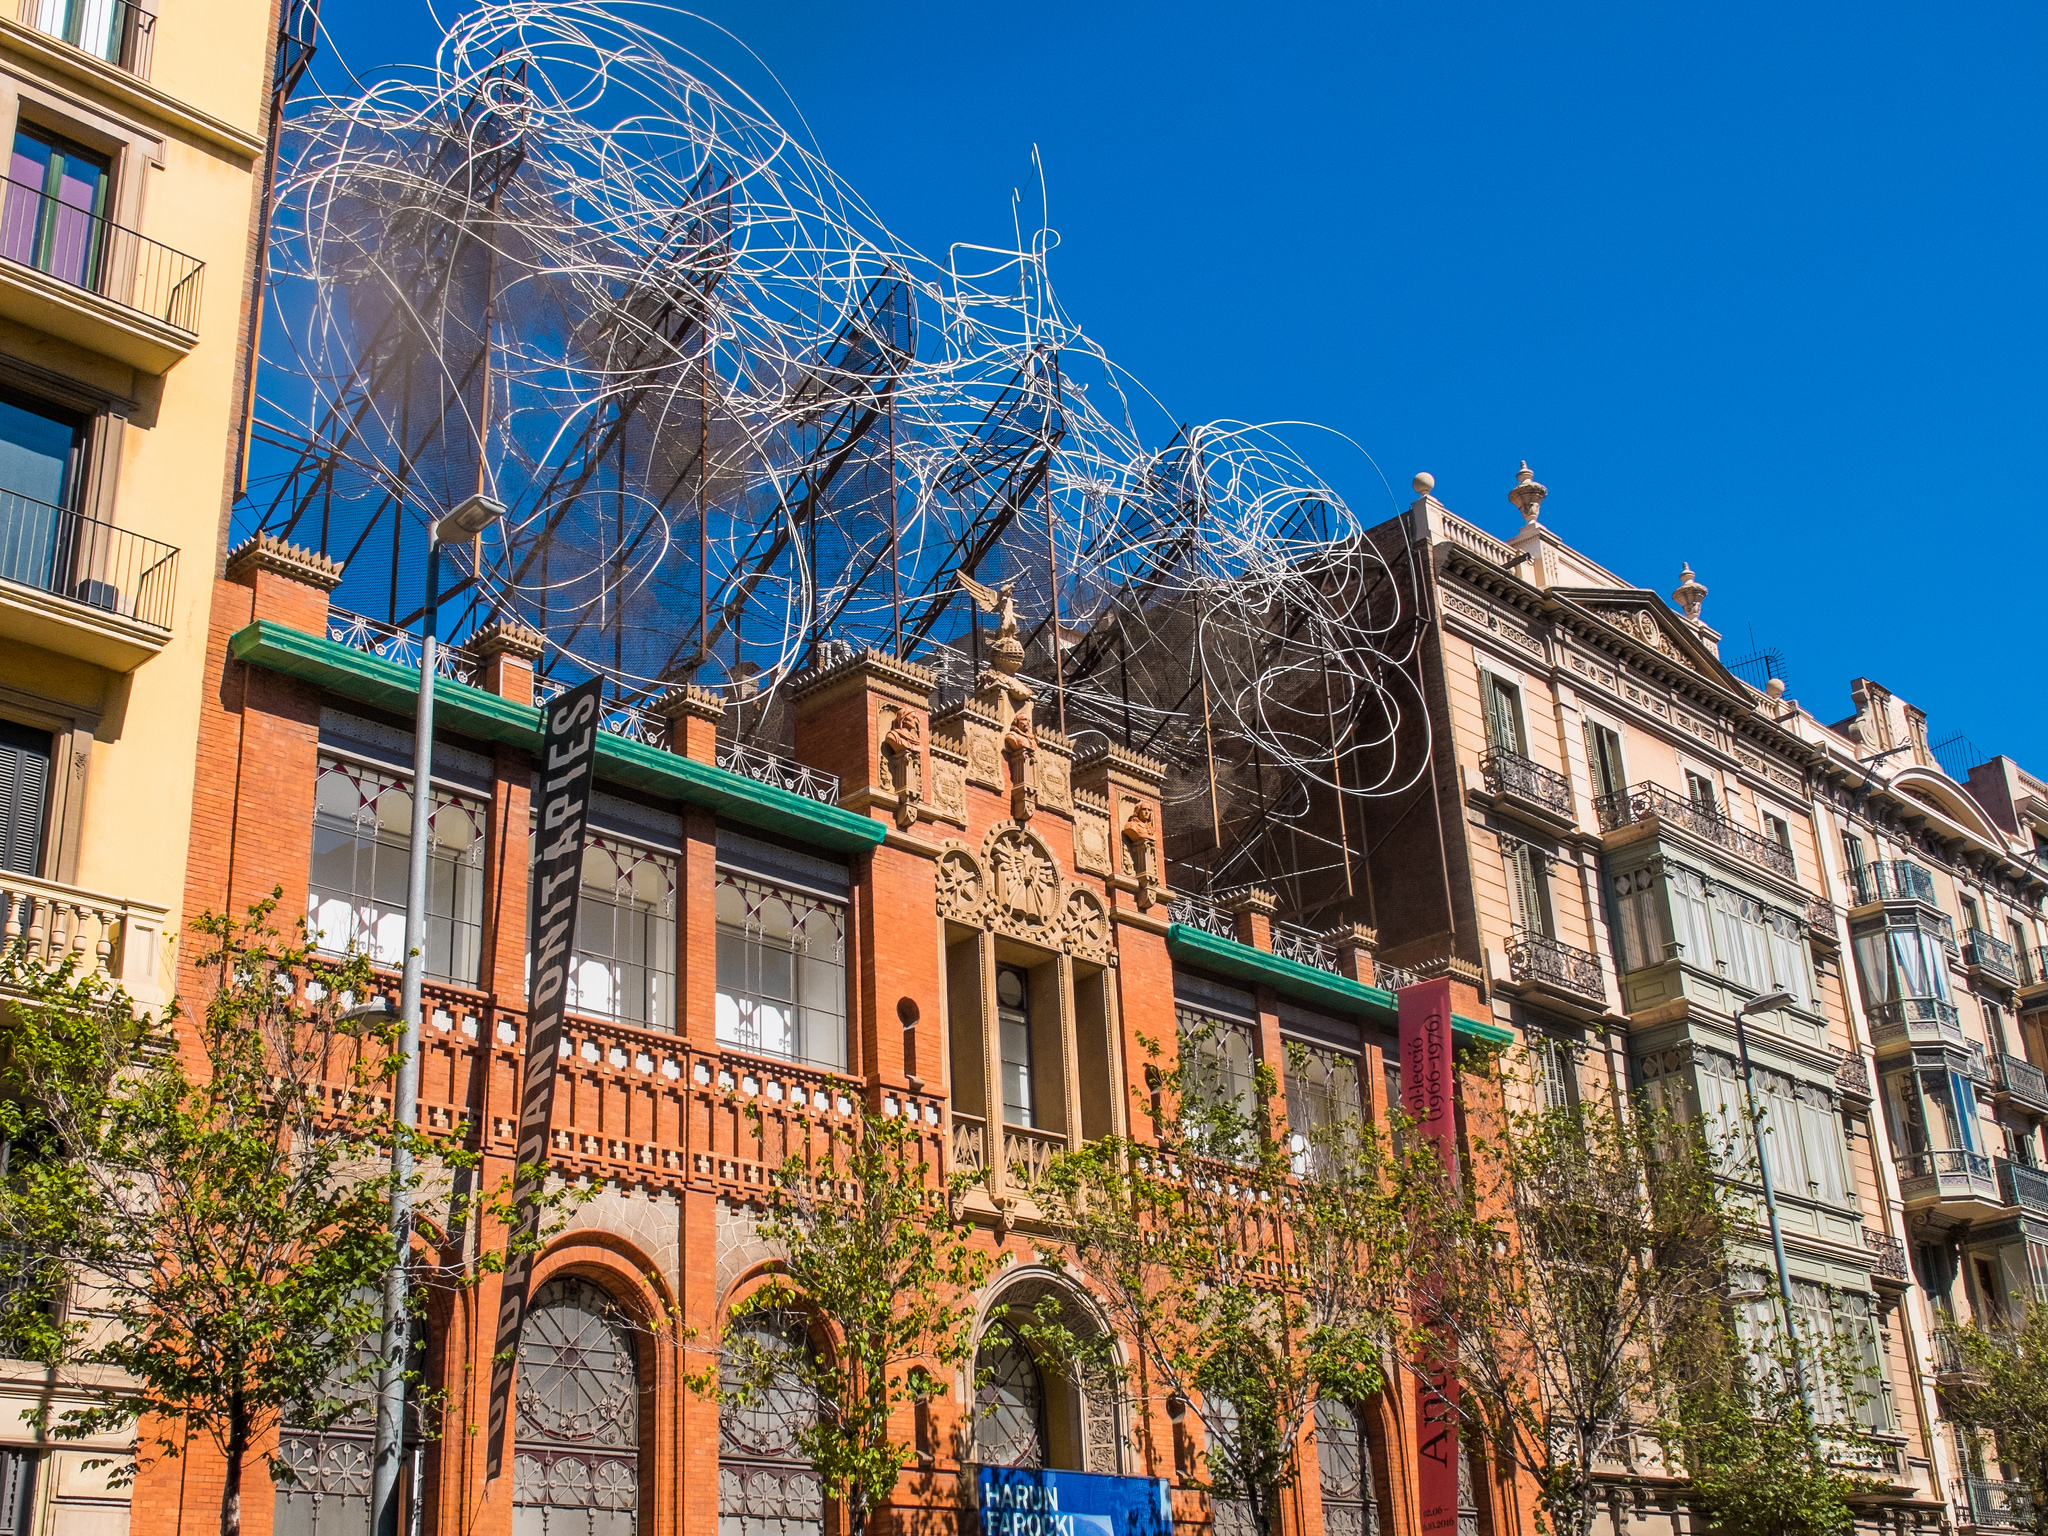 The Best Art Museums to Visit in Barcelona and What to See Inside